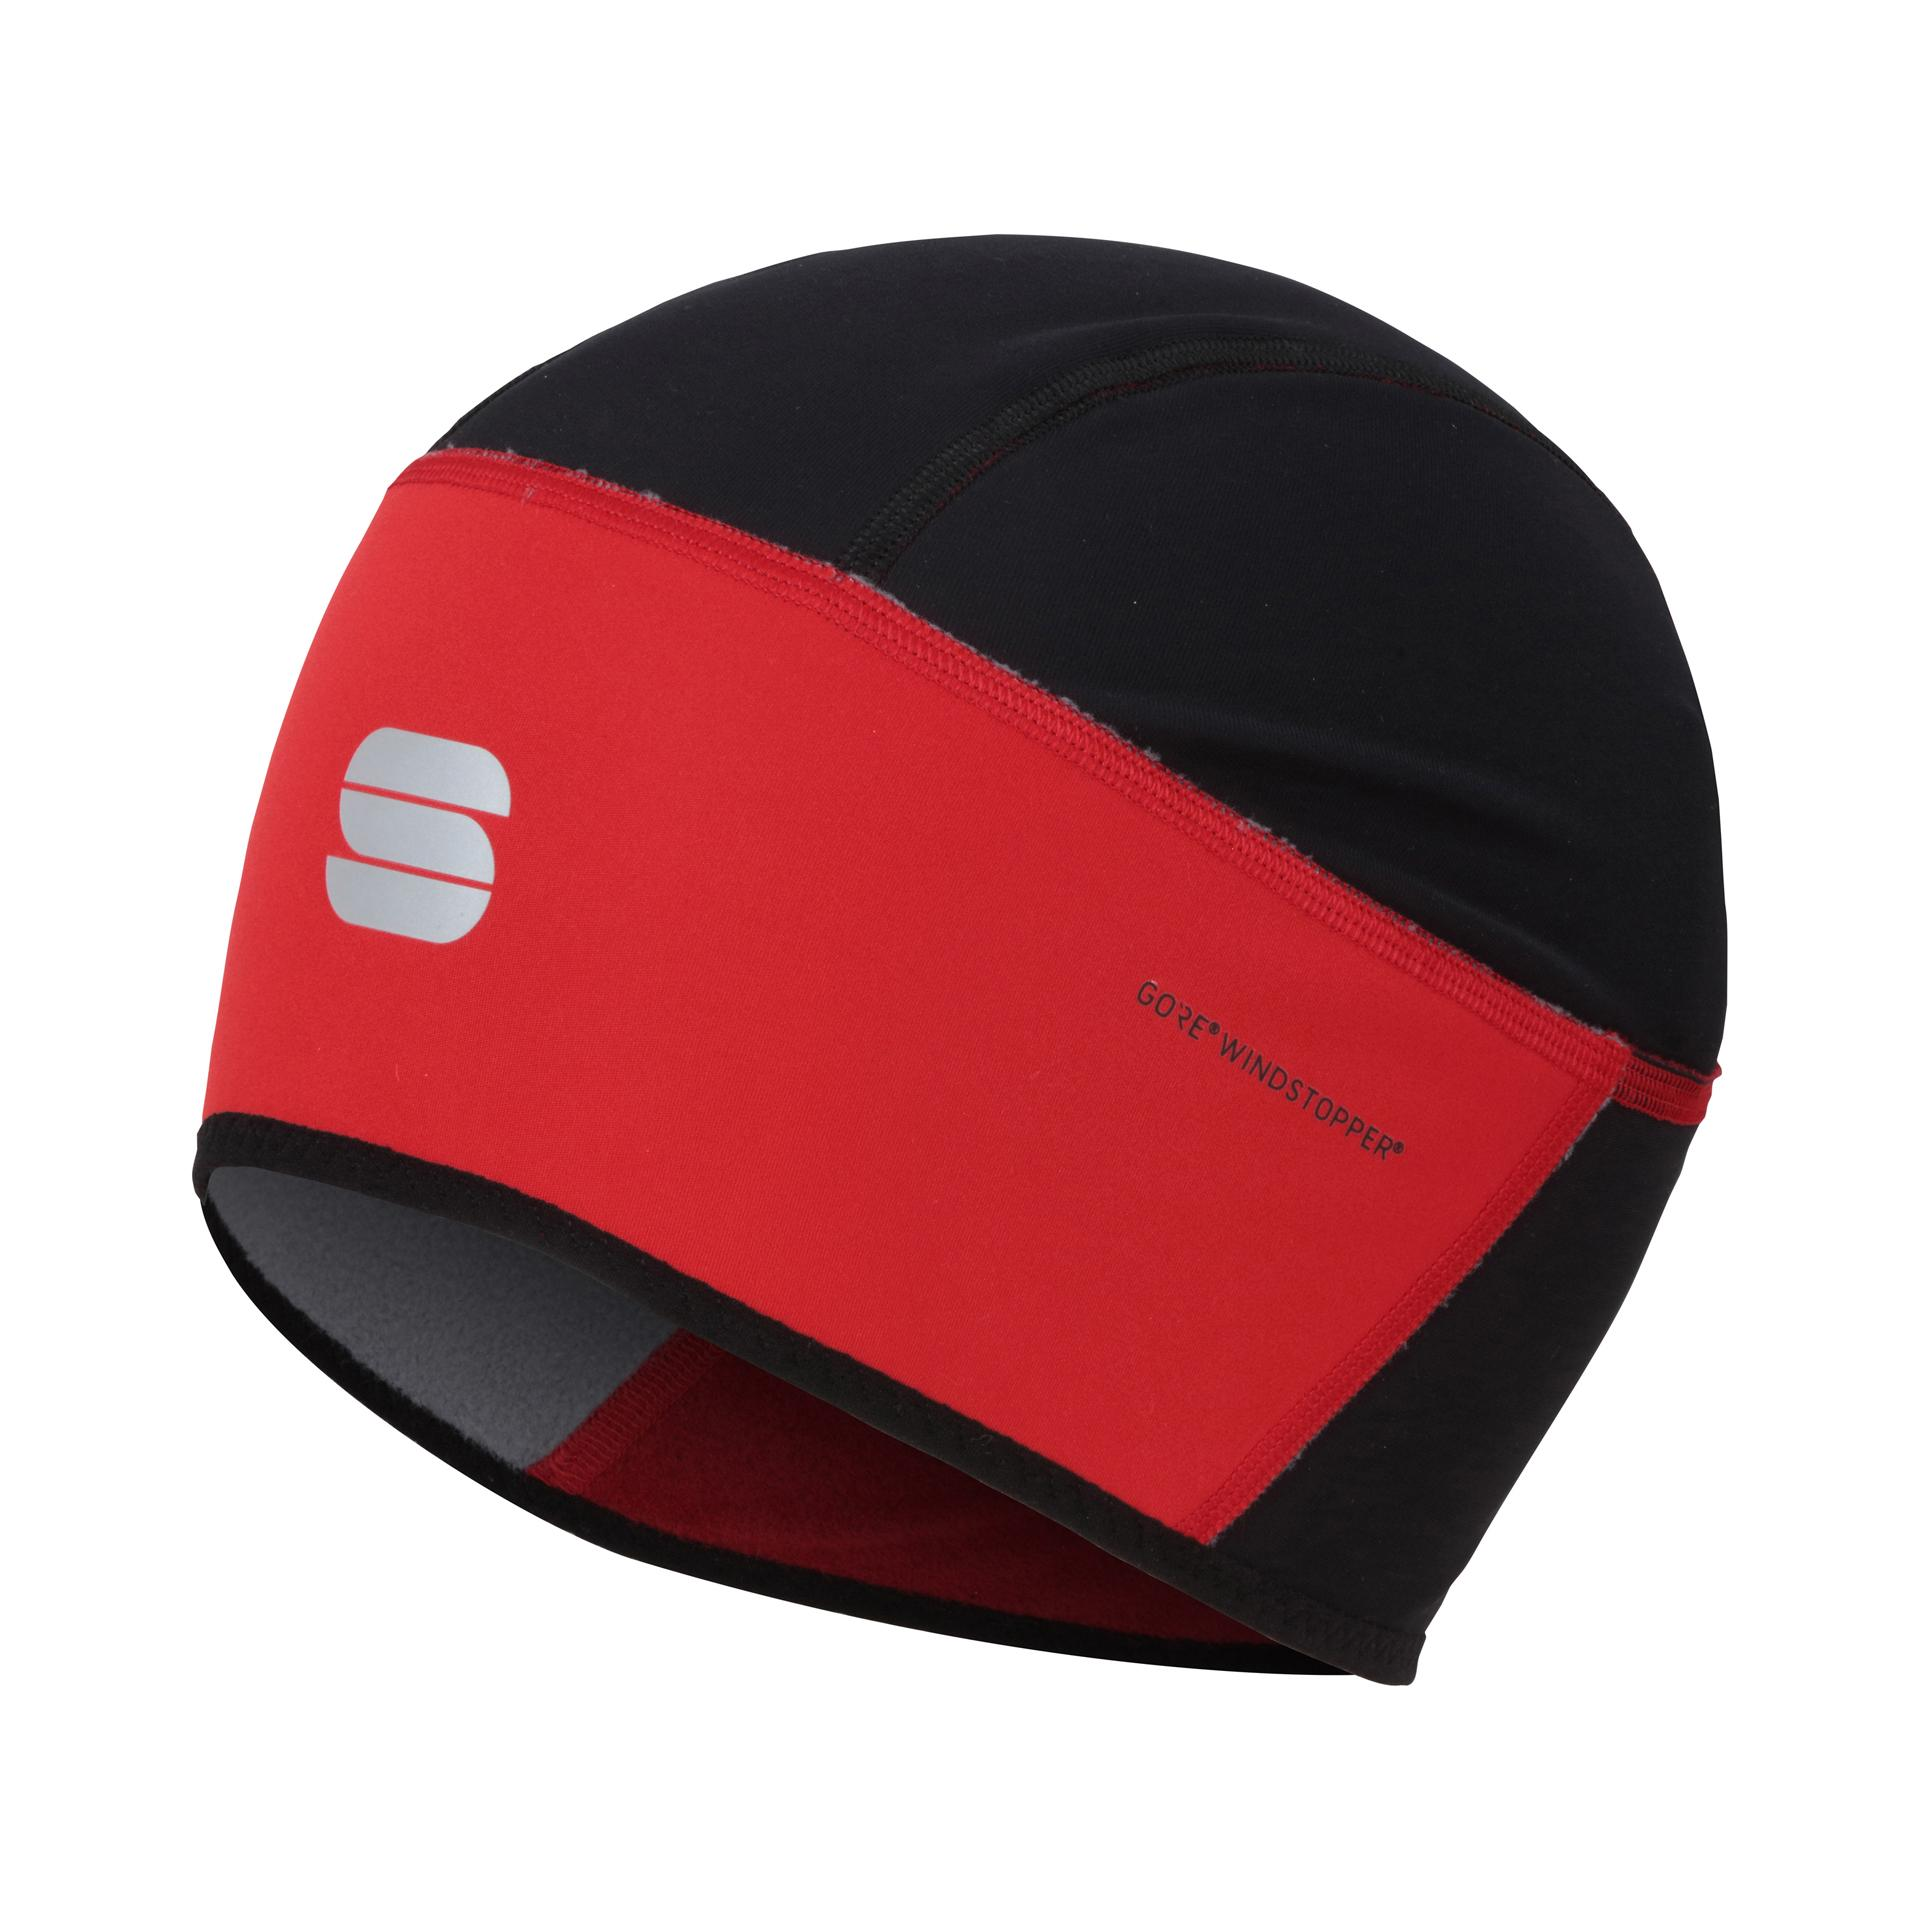 Sportful Helmmuts Heren Rood Zwart / SF Ws Helmet Liner-Red/Black